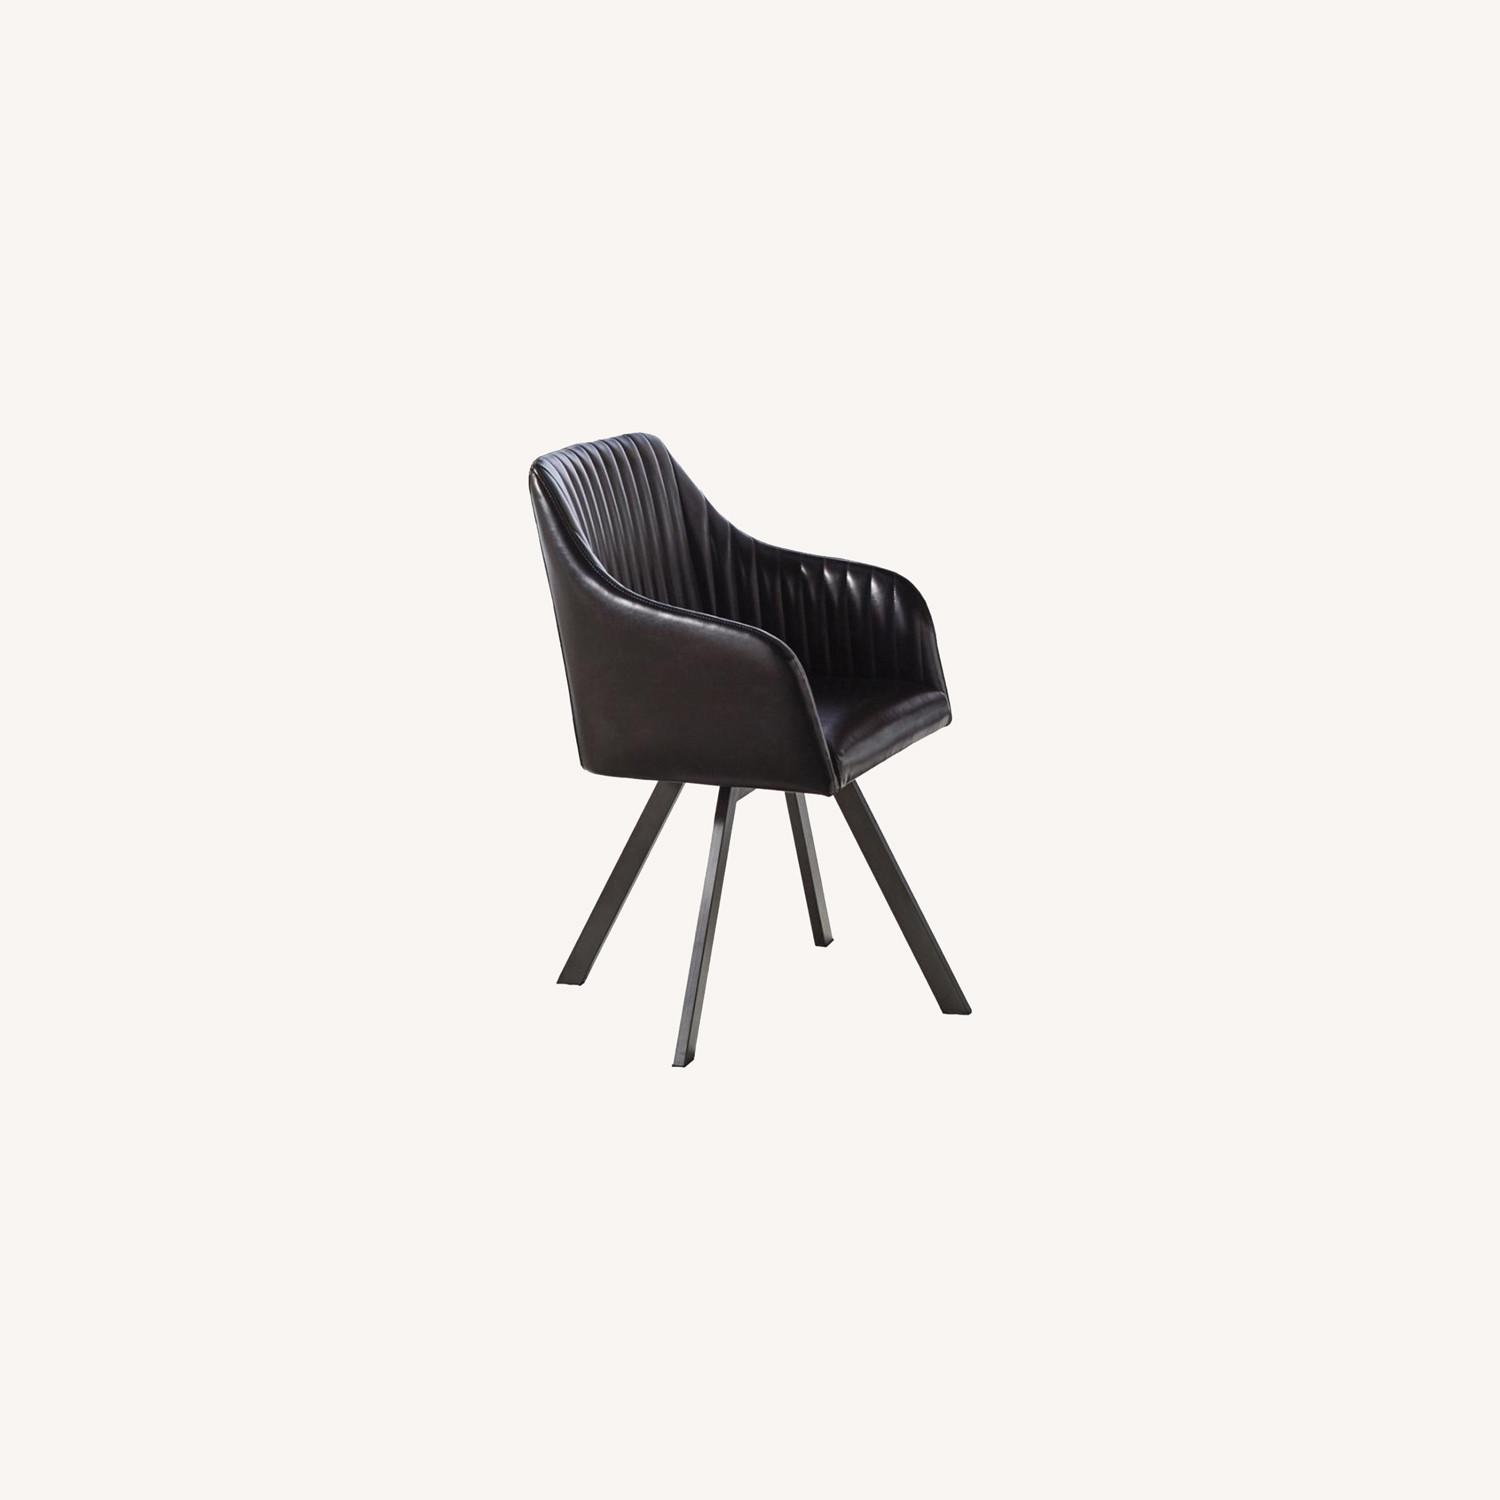 Swivel Dining Chair In Black Leatherette Finish - image-4